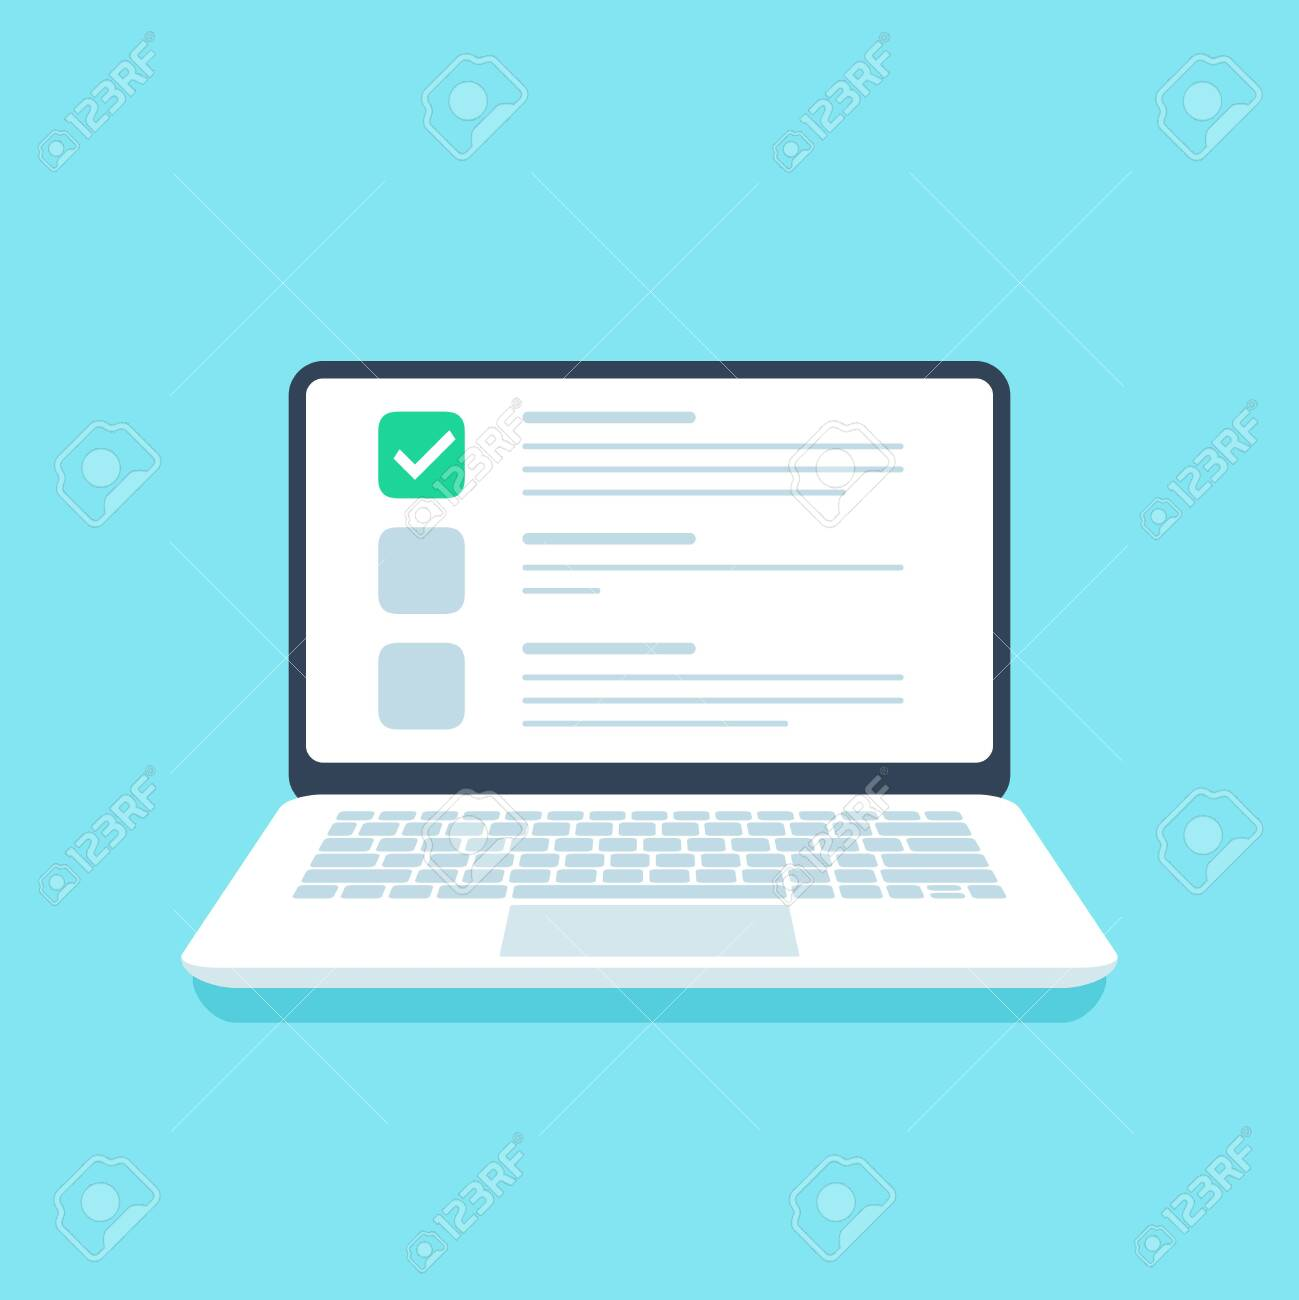 Online Quiz Checklist Web Exam Options Choice On Laptop Screen Royalty Free Cliparts Vectors And Stock Illustration Image 124159220